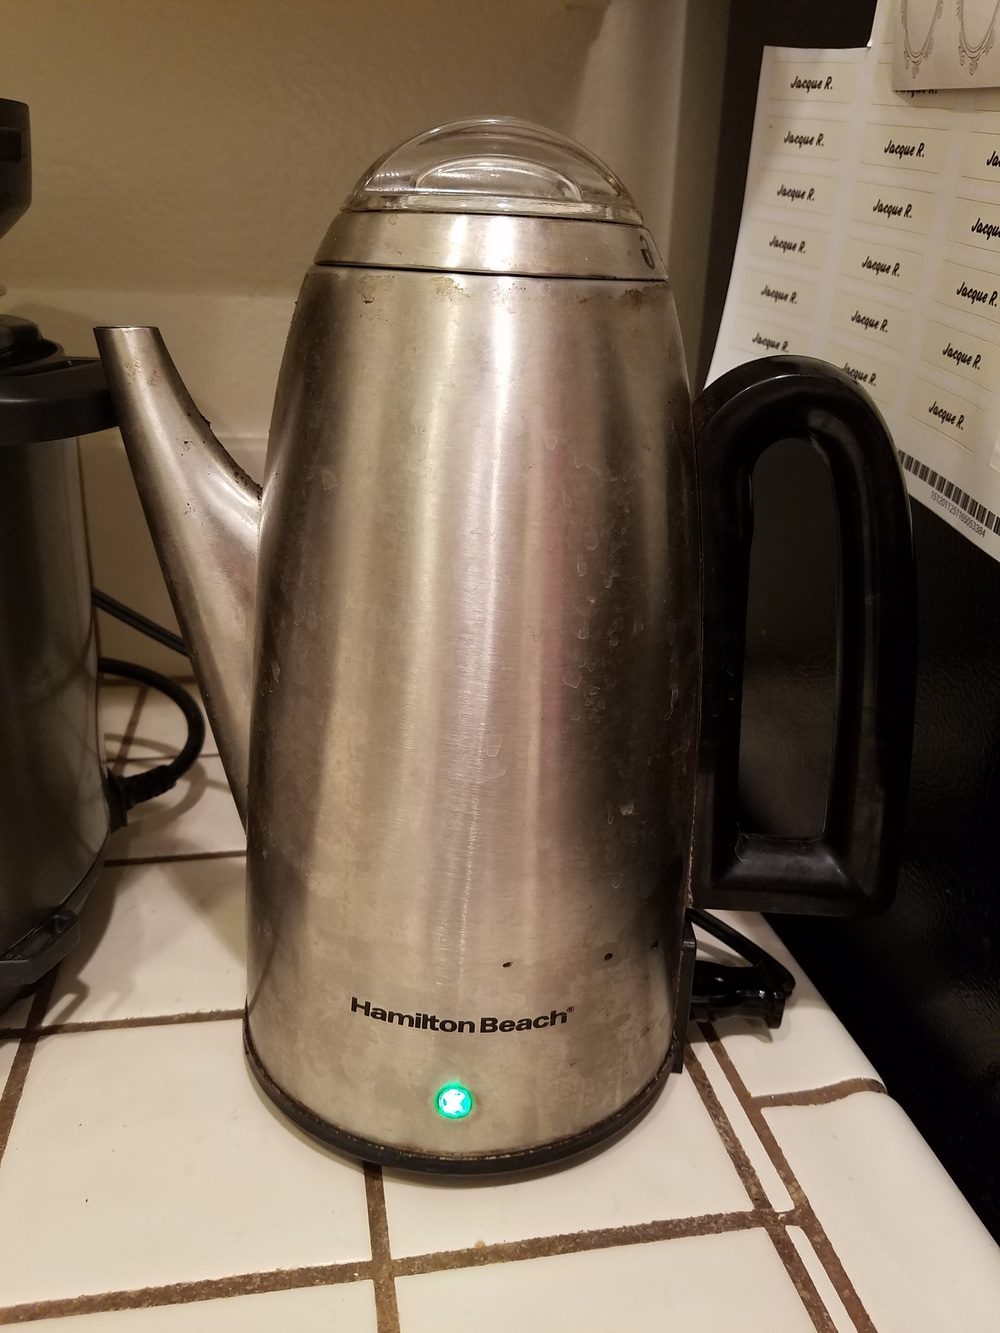 It's time for the percolator . . .